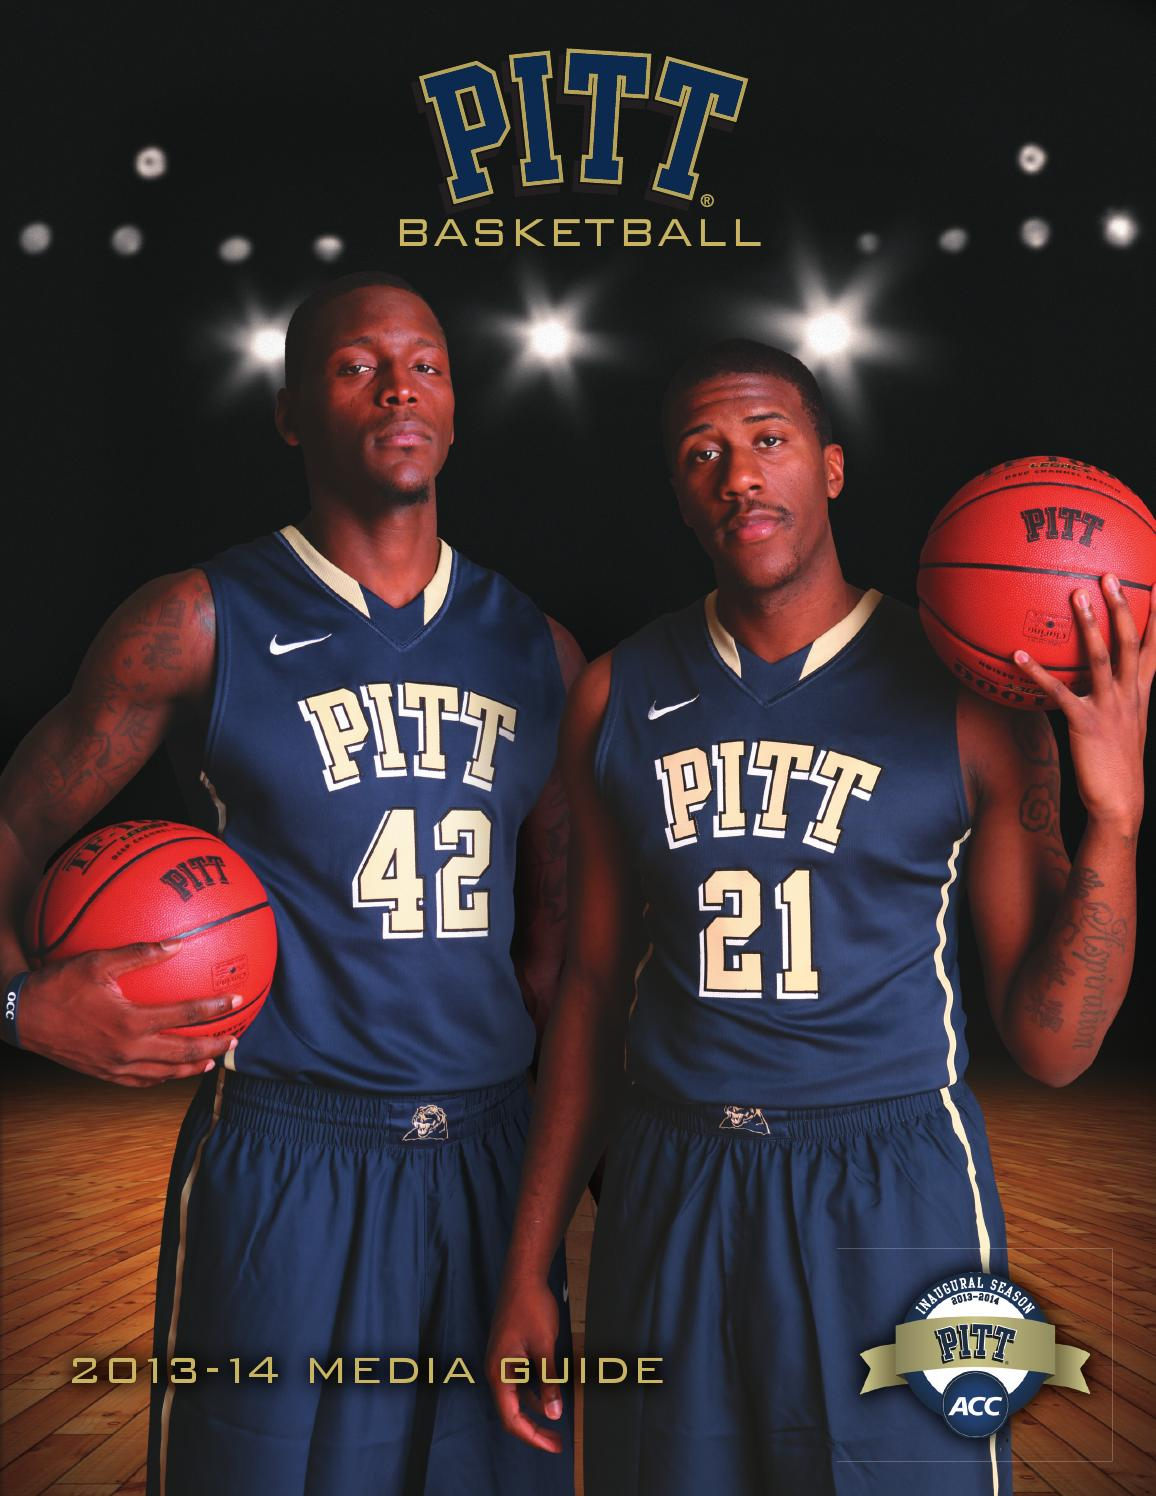 145e476d0464 2013-14 Pitt Men s Basketball Media Guide and Fact Book by University of  Pittsburgh Athletics - issuu